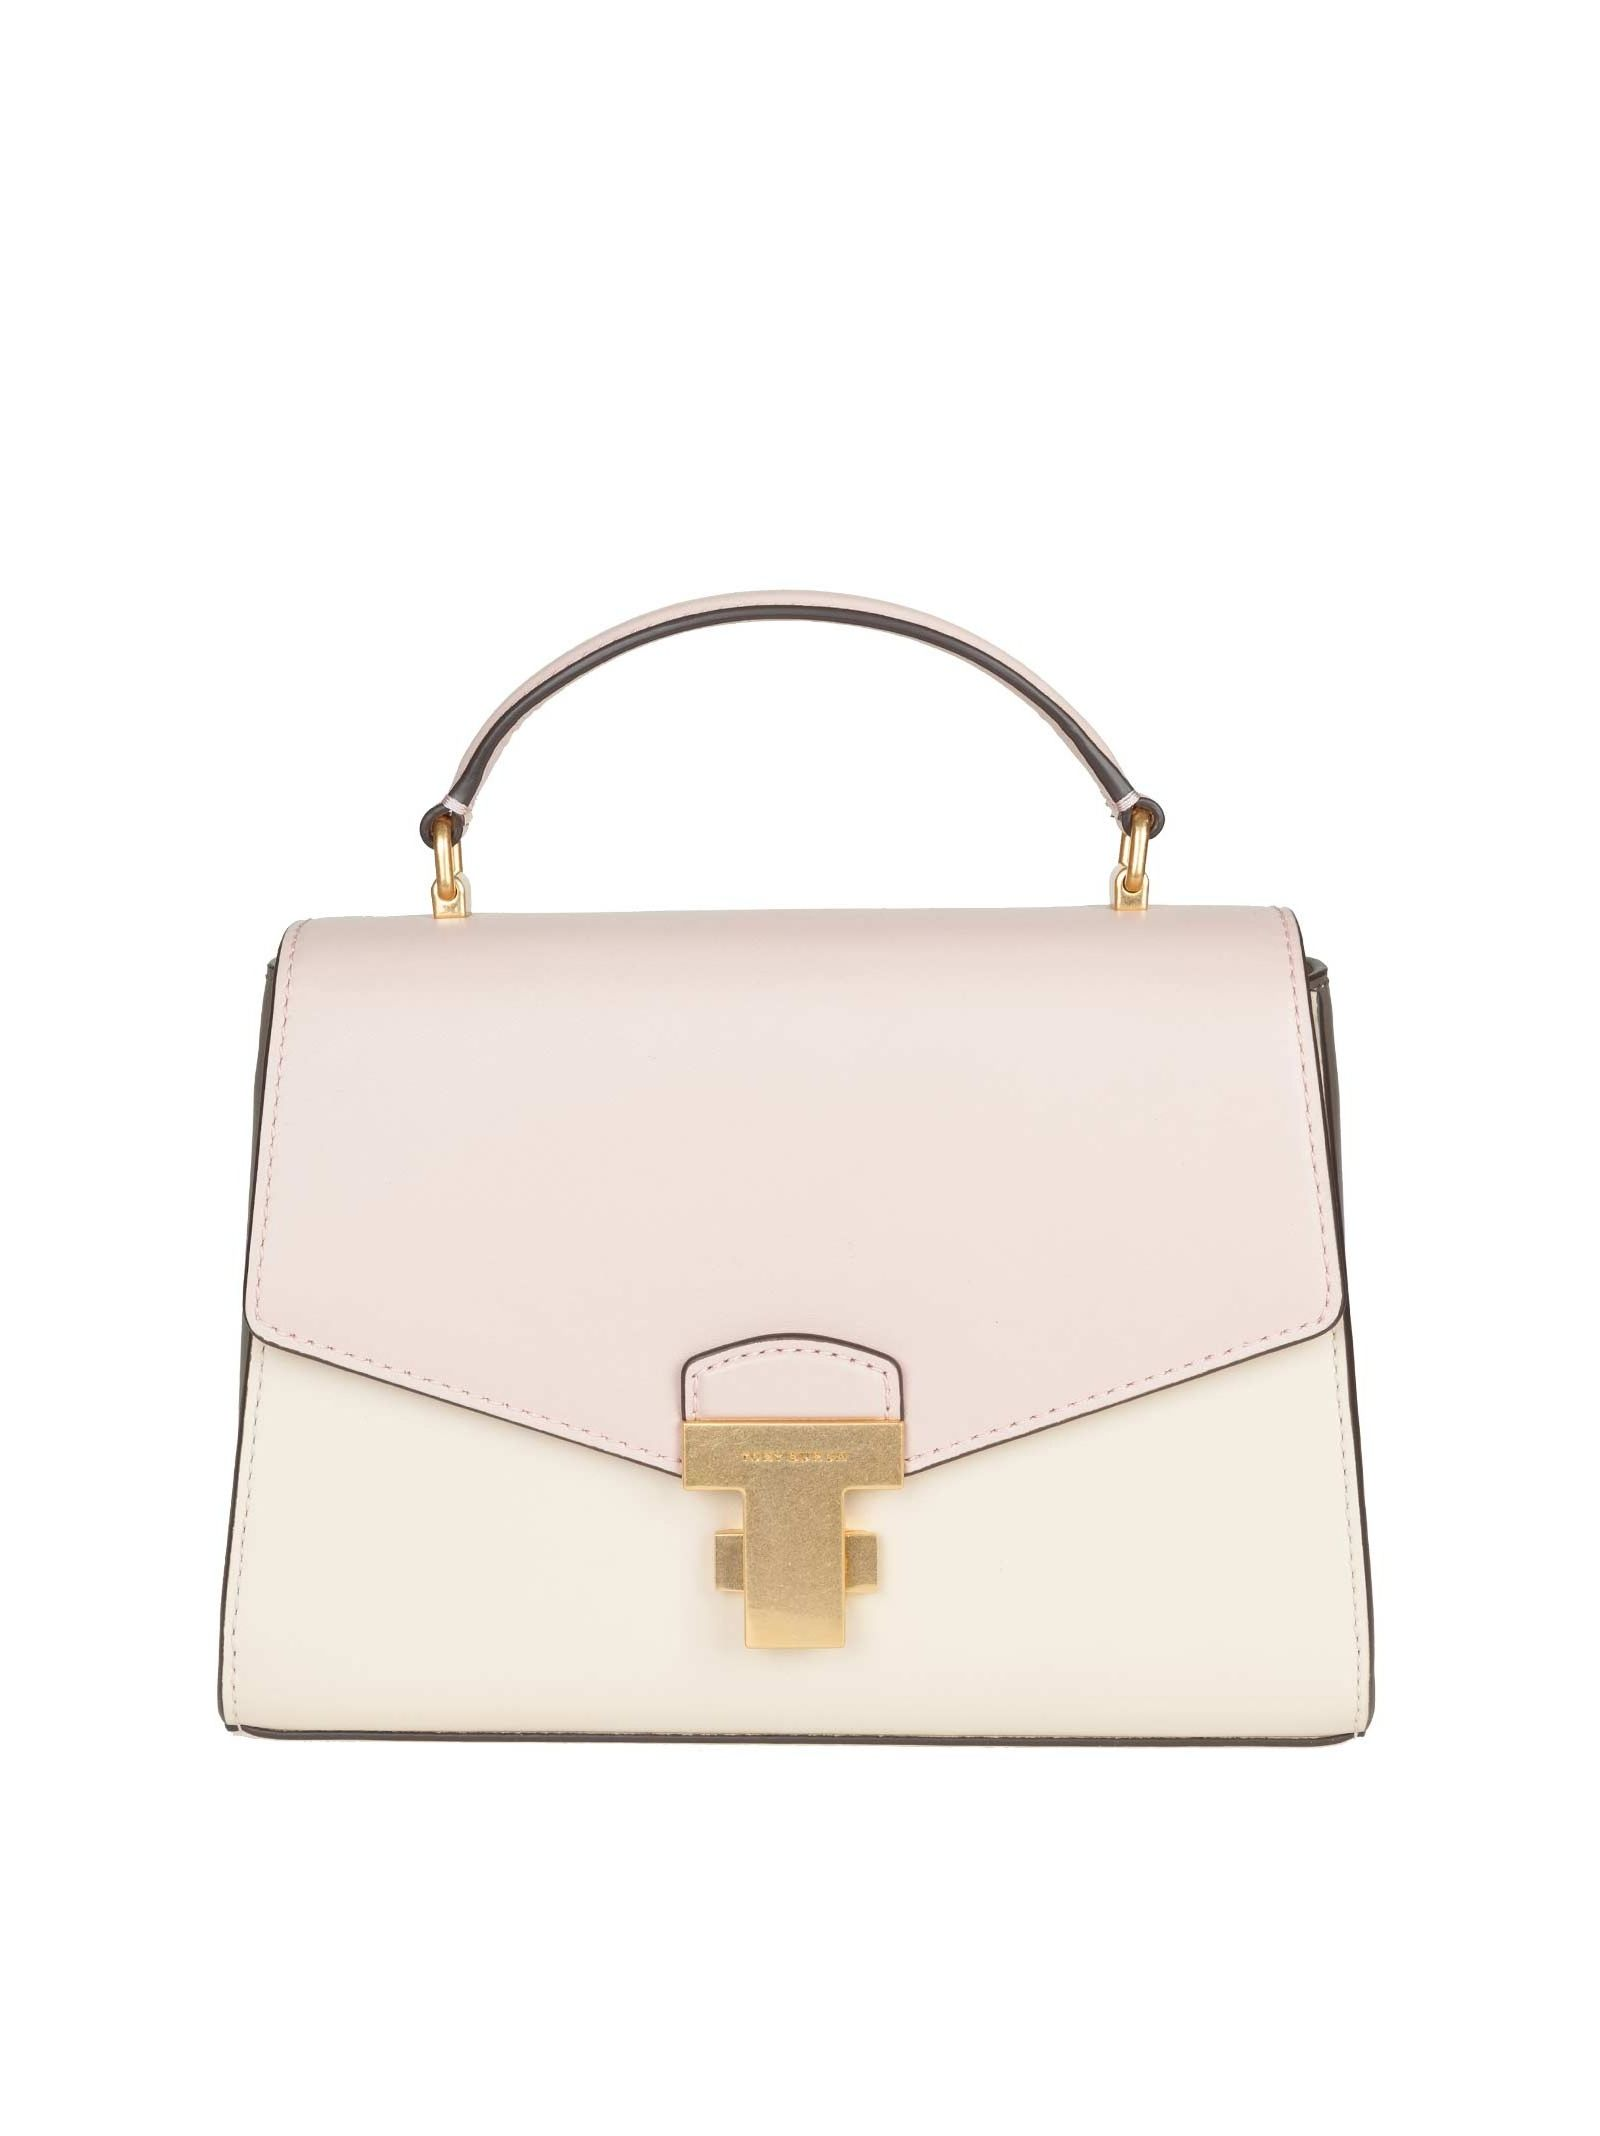 Tory Burch Small Juliette Bag In Leather